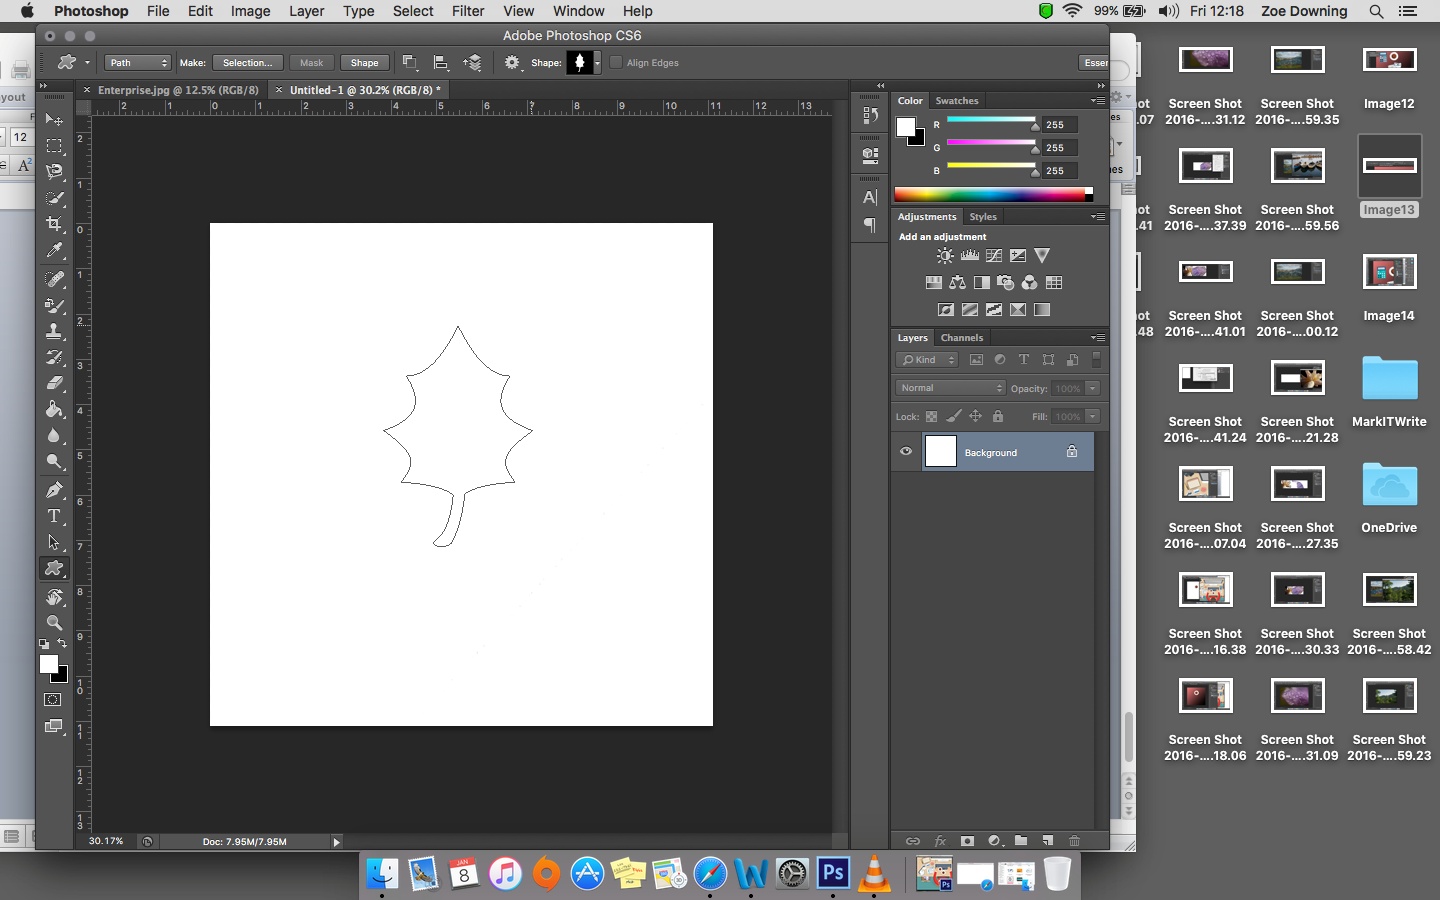 How to Draw a Line in Photoshop m